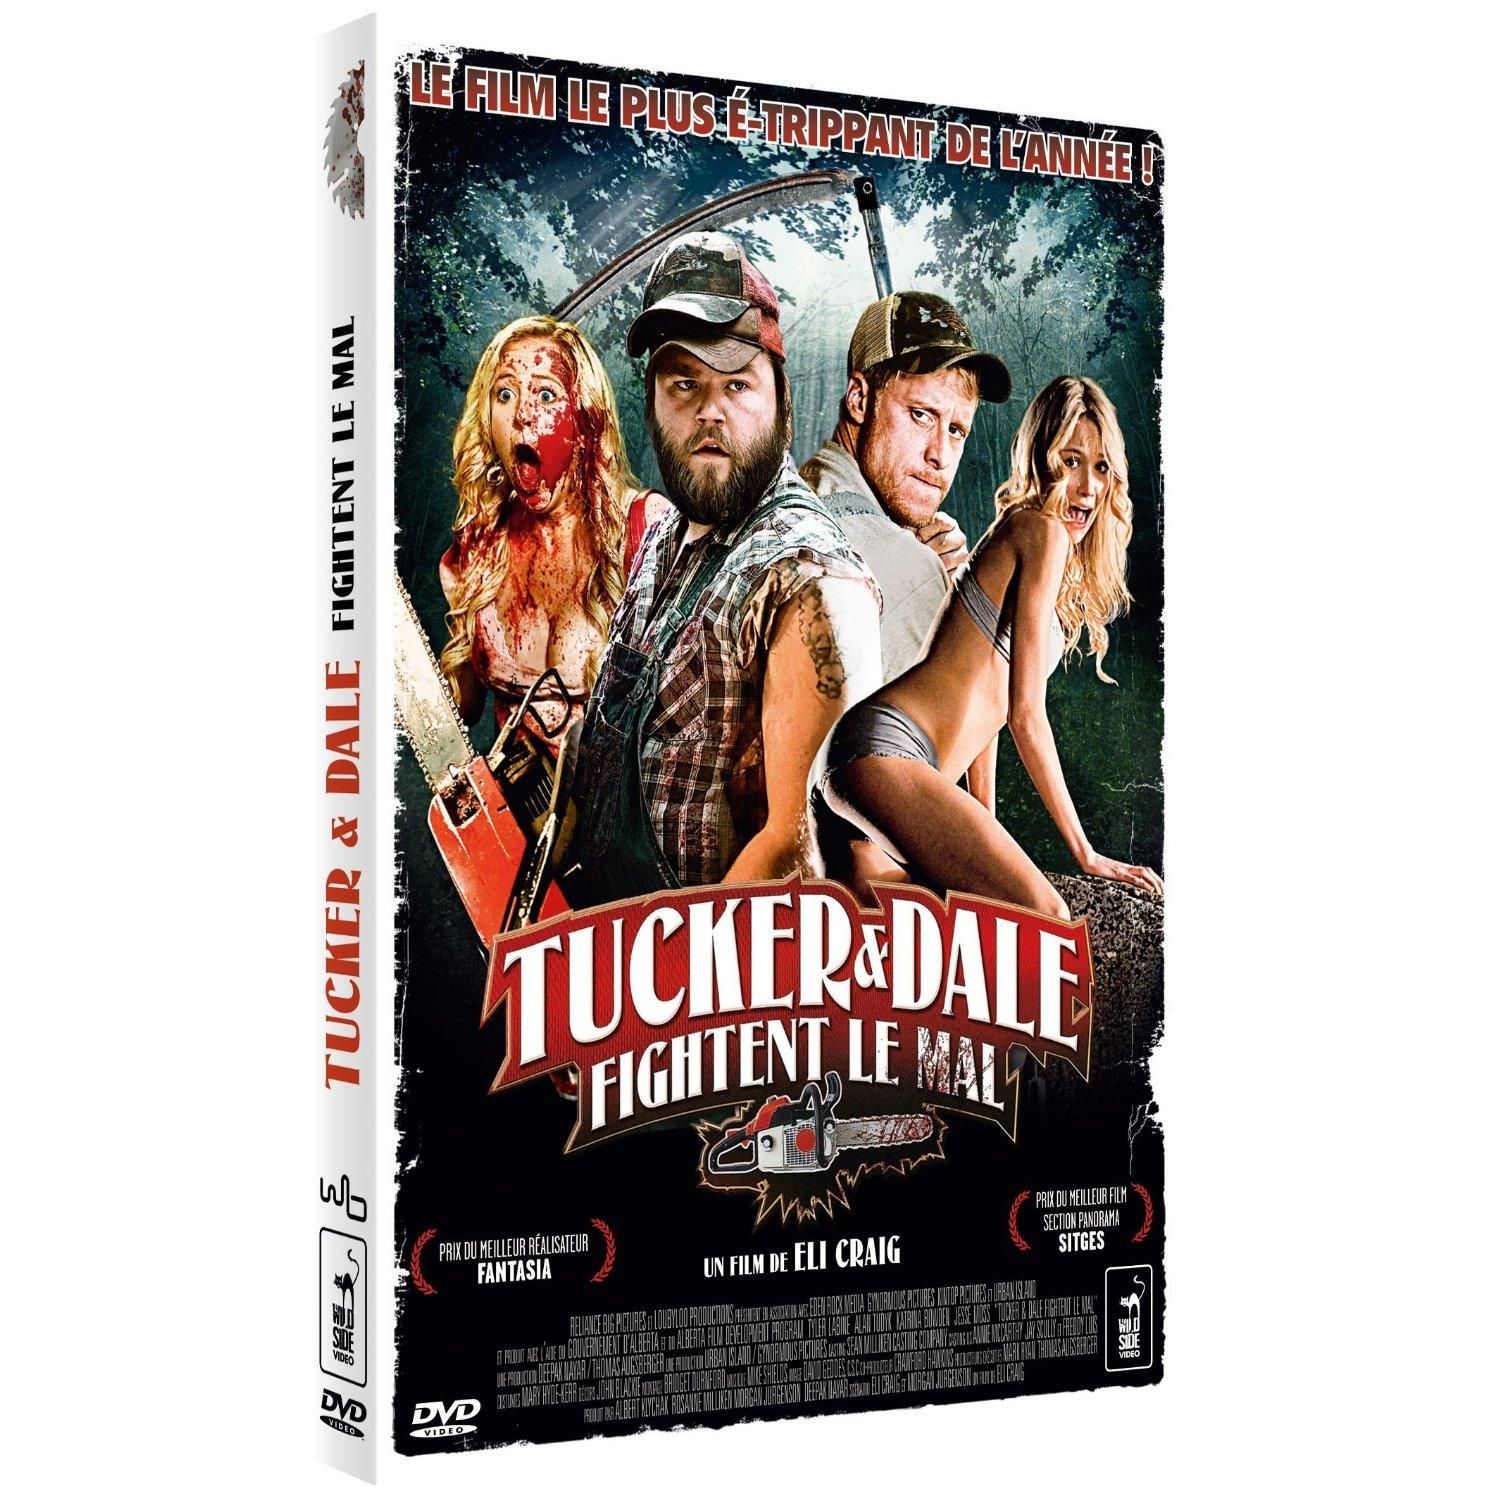 Concours Tucker & Dale fightent le mal : 2x1 DVD à gagner